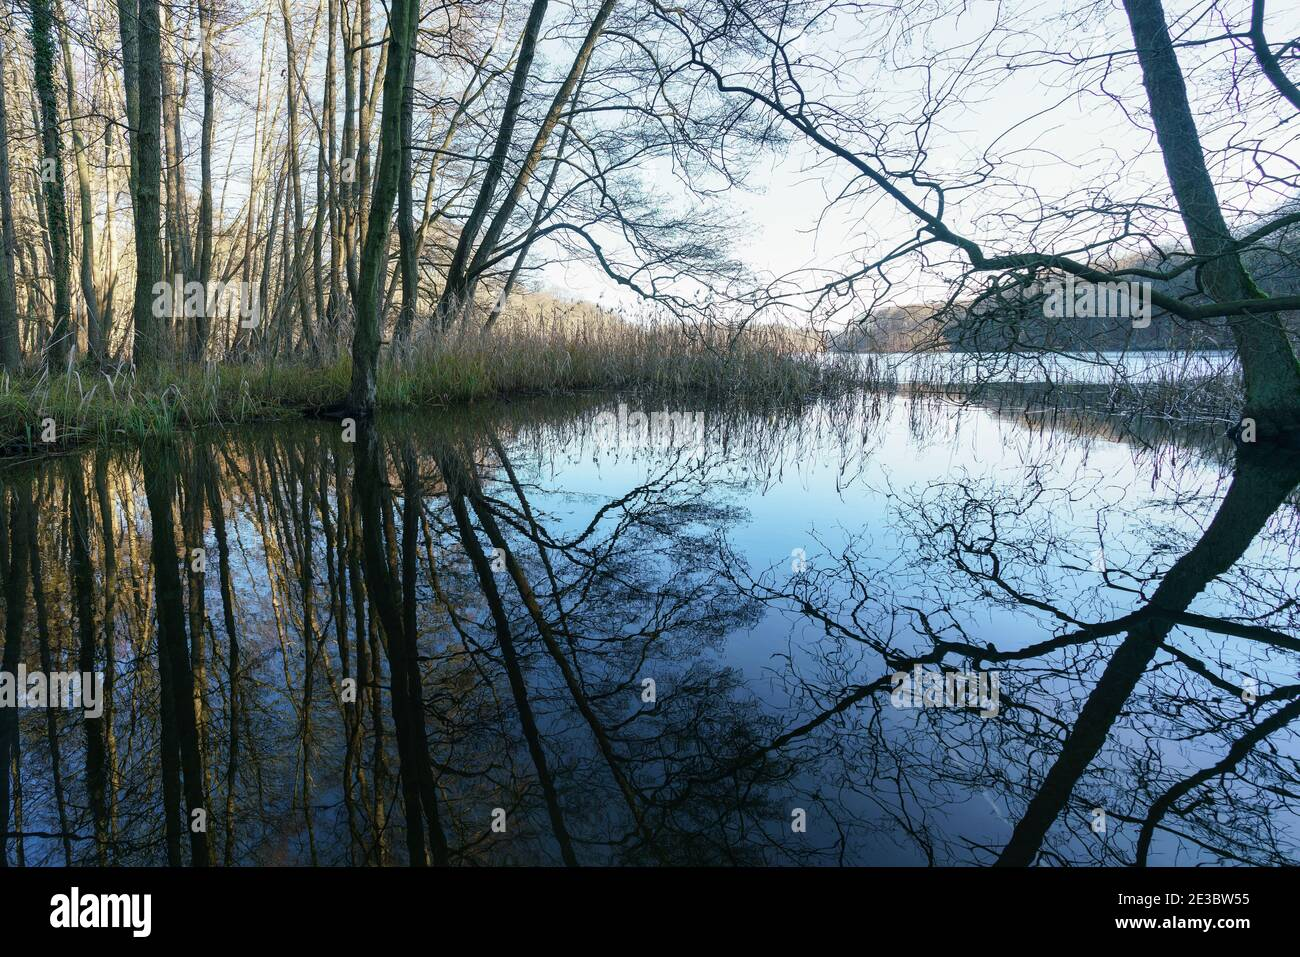 Reflections of trees on the water surface of Huwenowsee, Meseberg, Germany Stock Photo